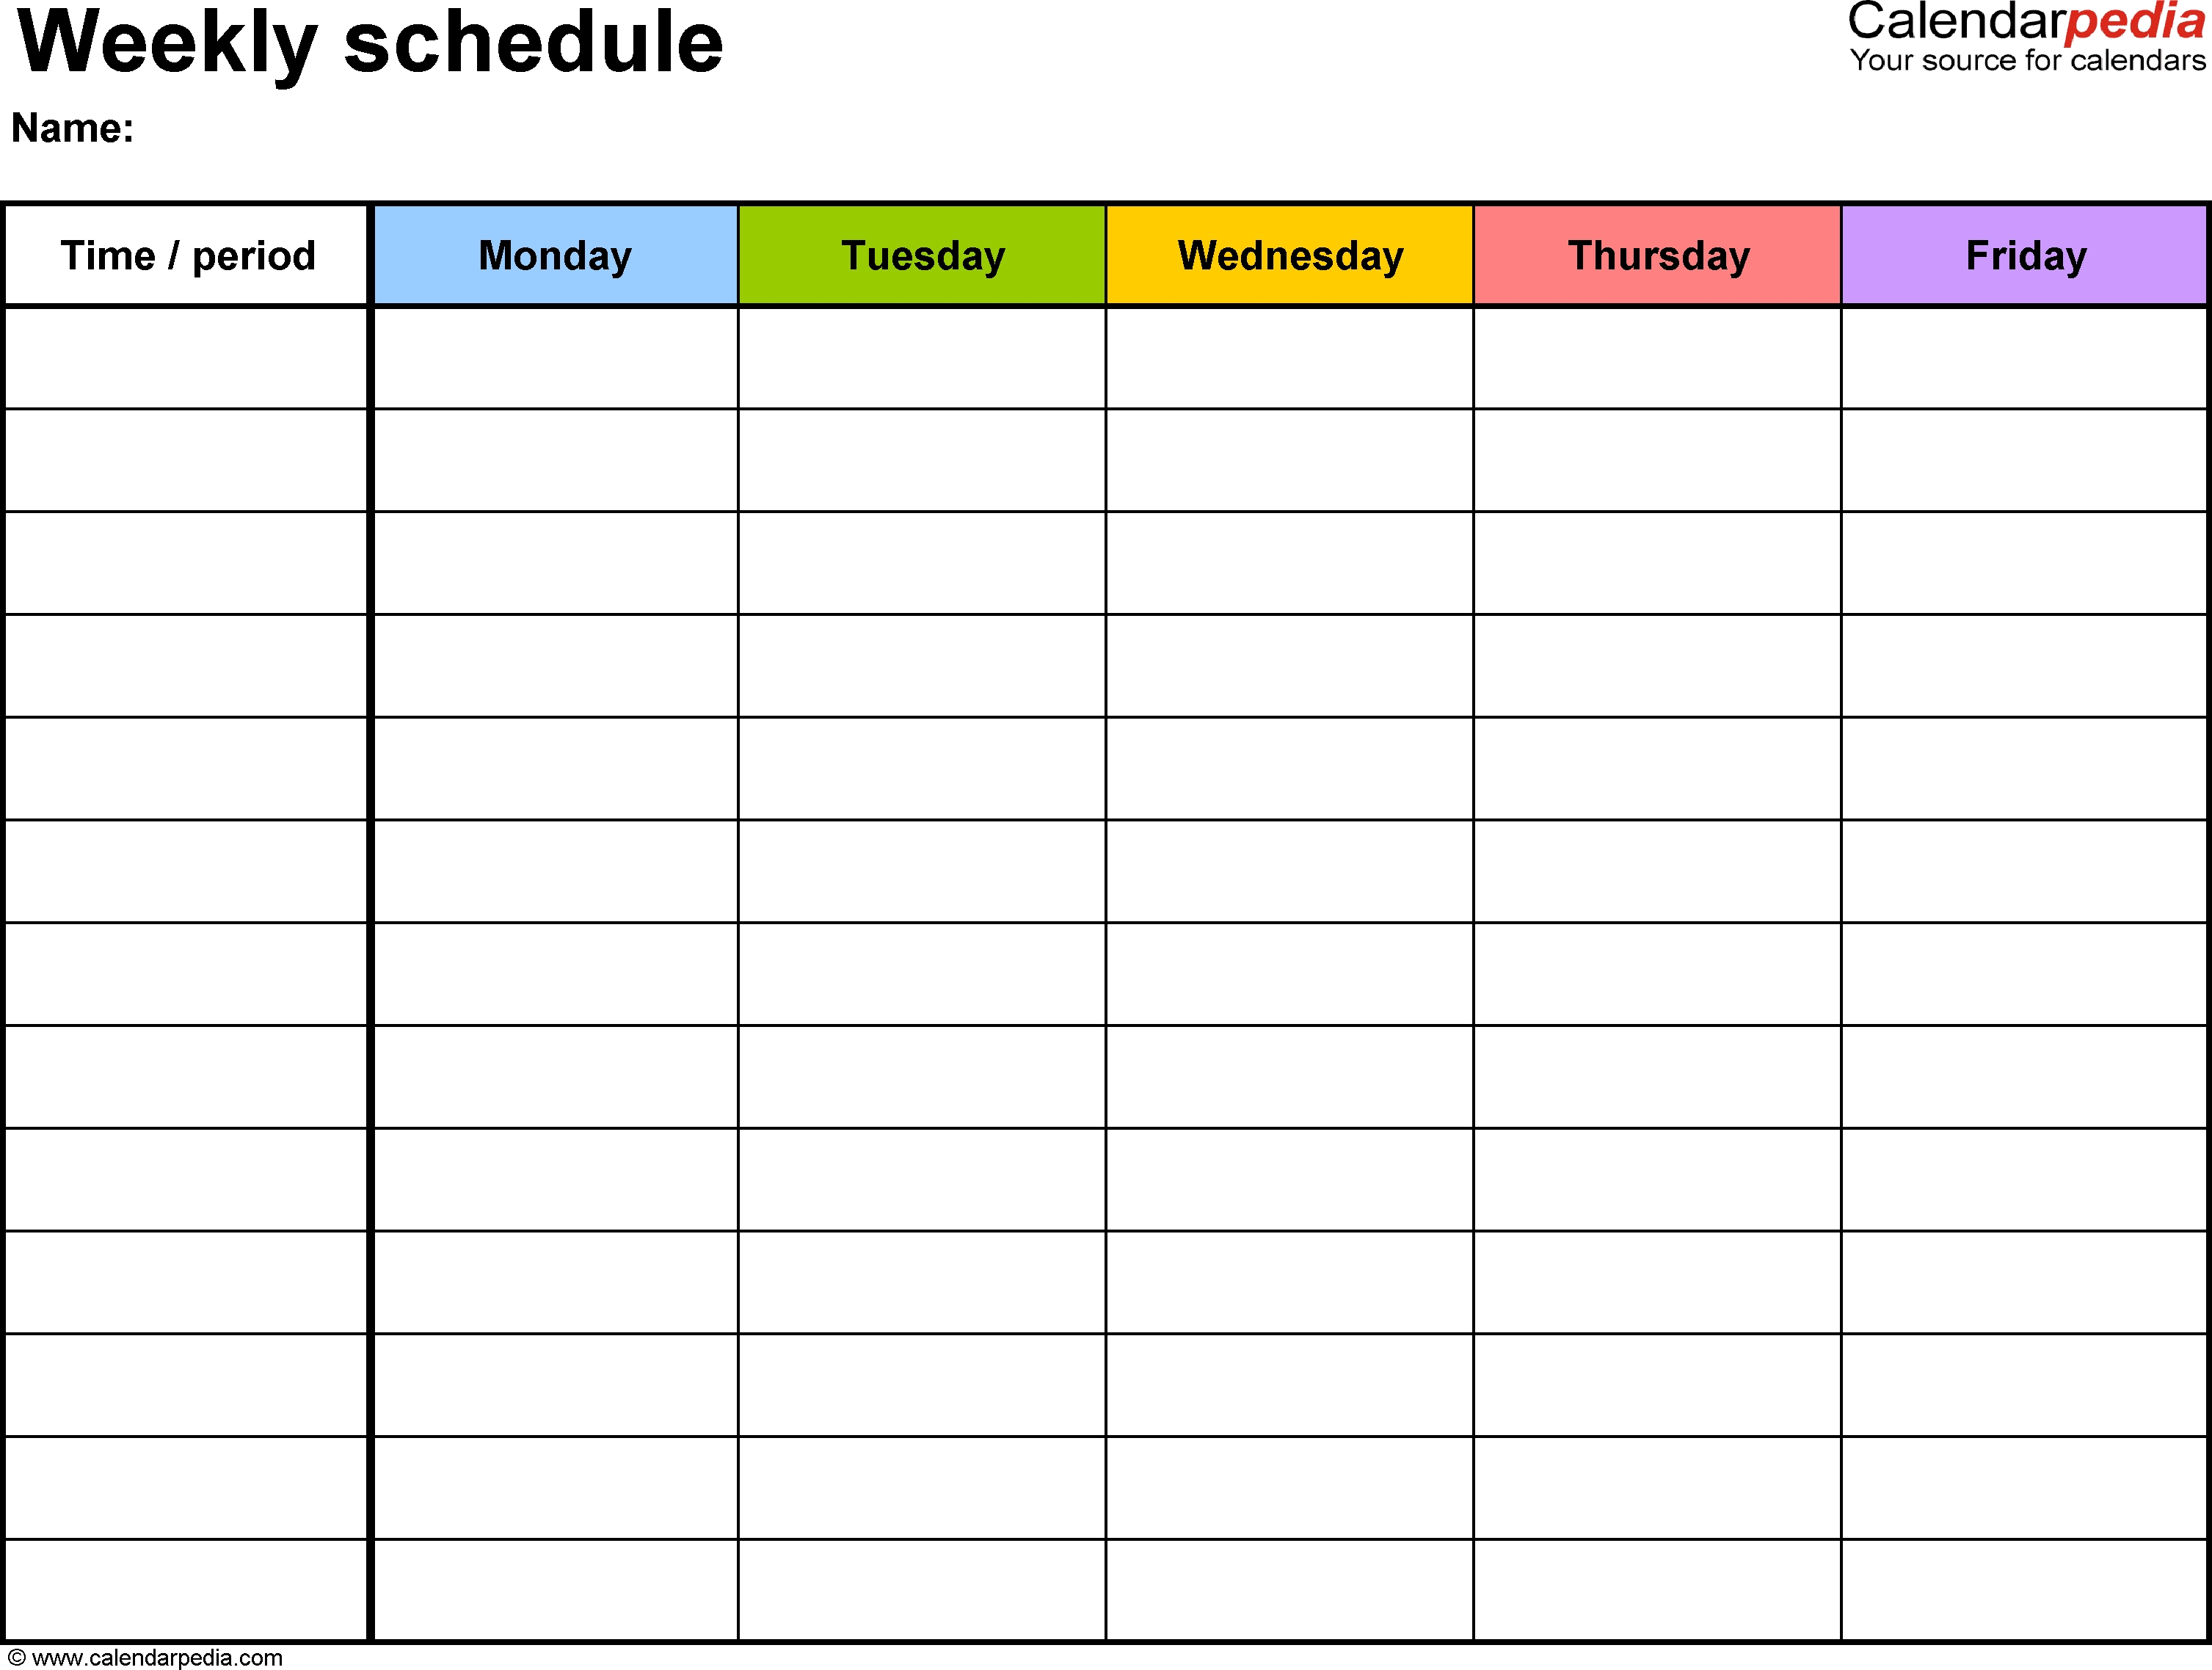 Monthly Weekly Planning Calendar Free